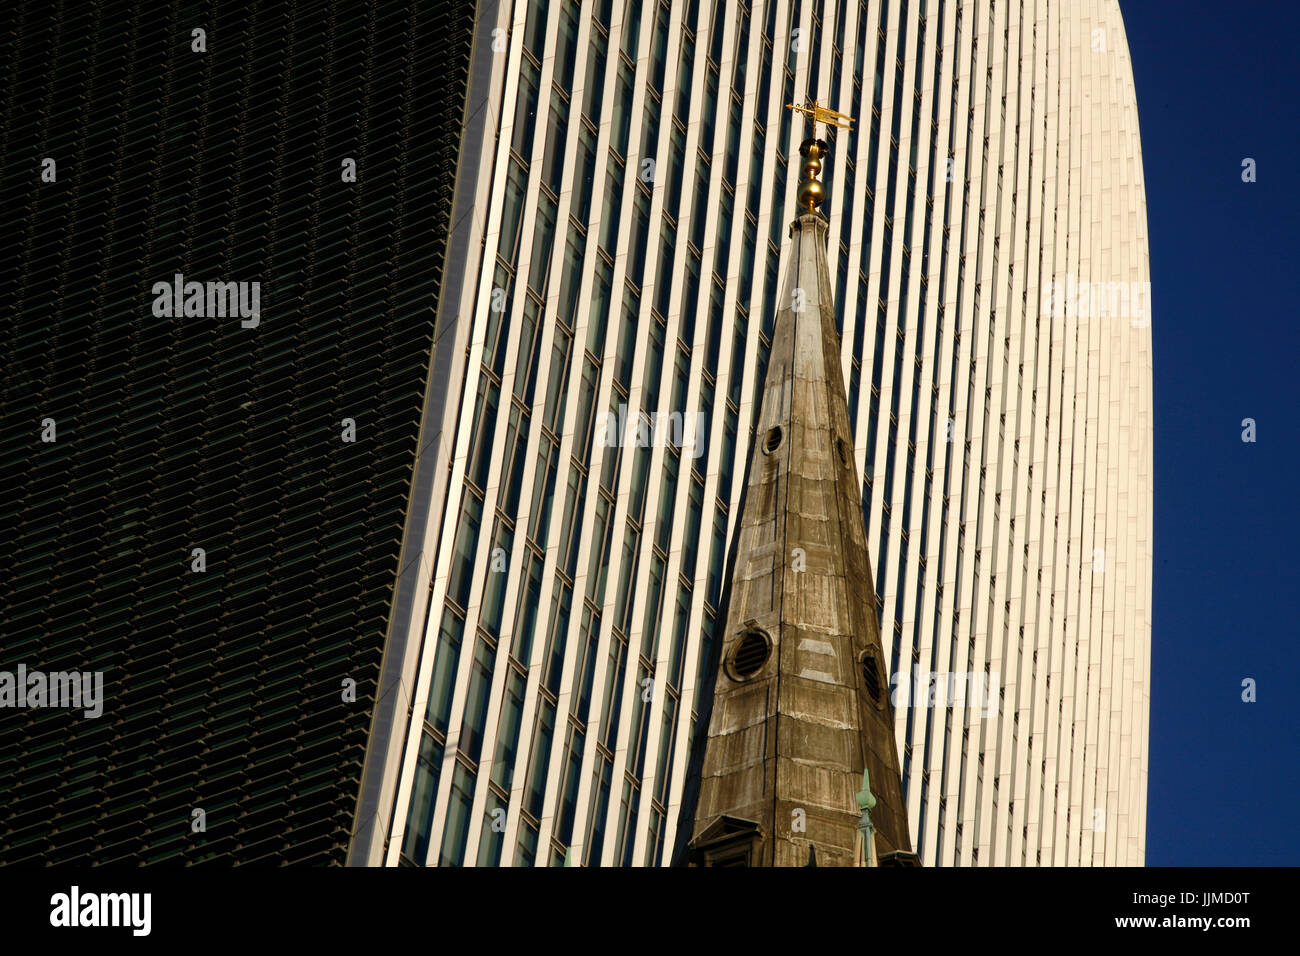 Spire of St Margaret Pattens church in front of 20 Fenchurch Street (Walkie Talkie), City of London, UK - Stock Image